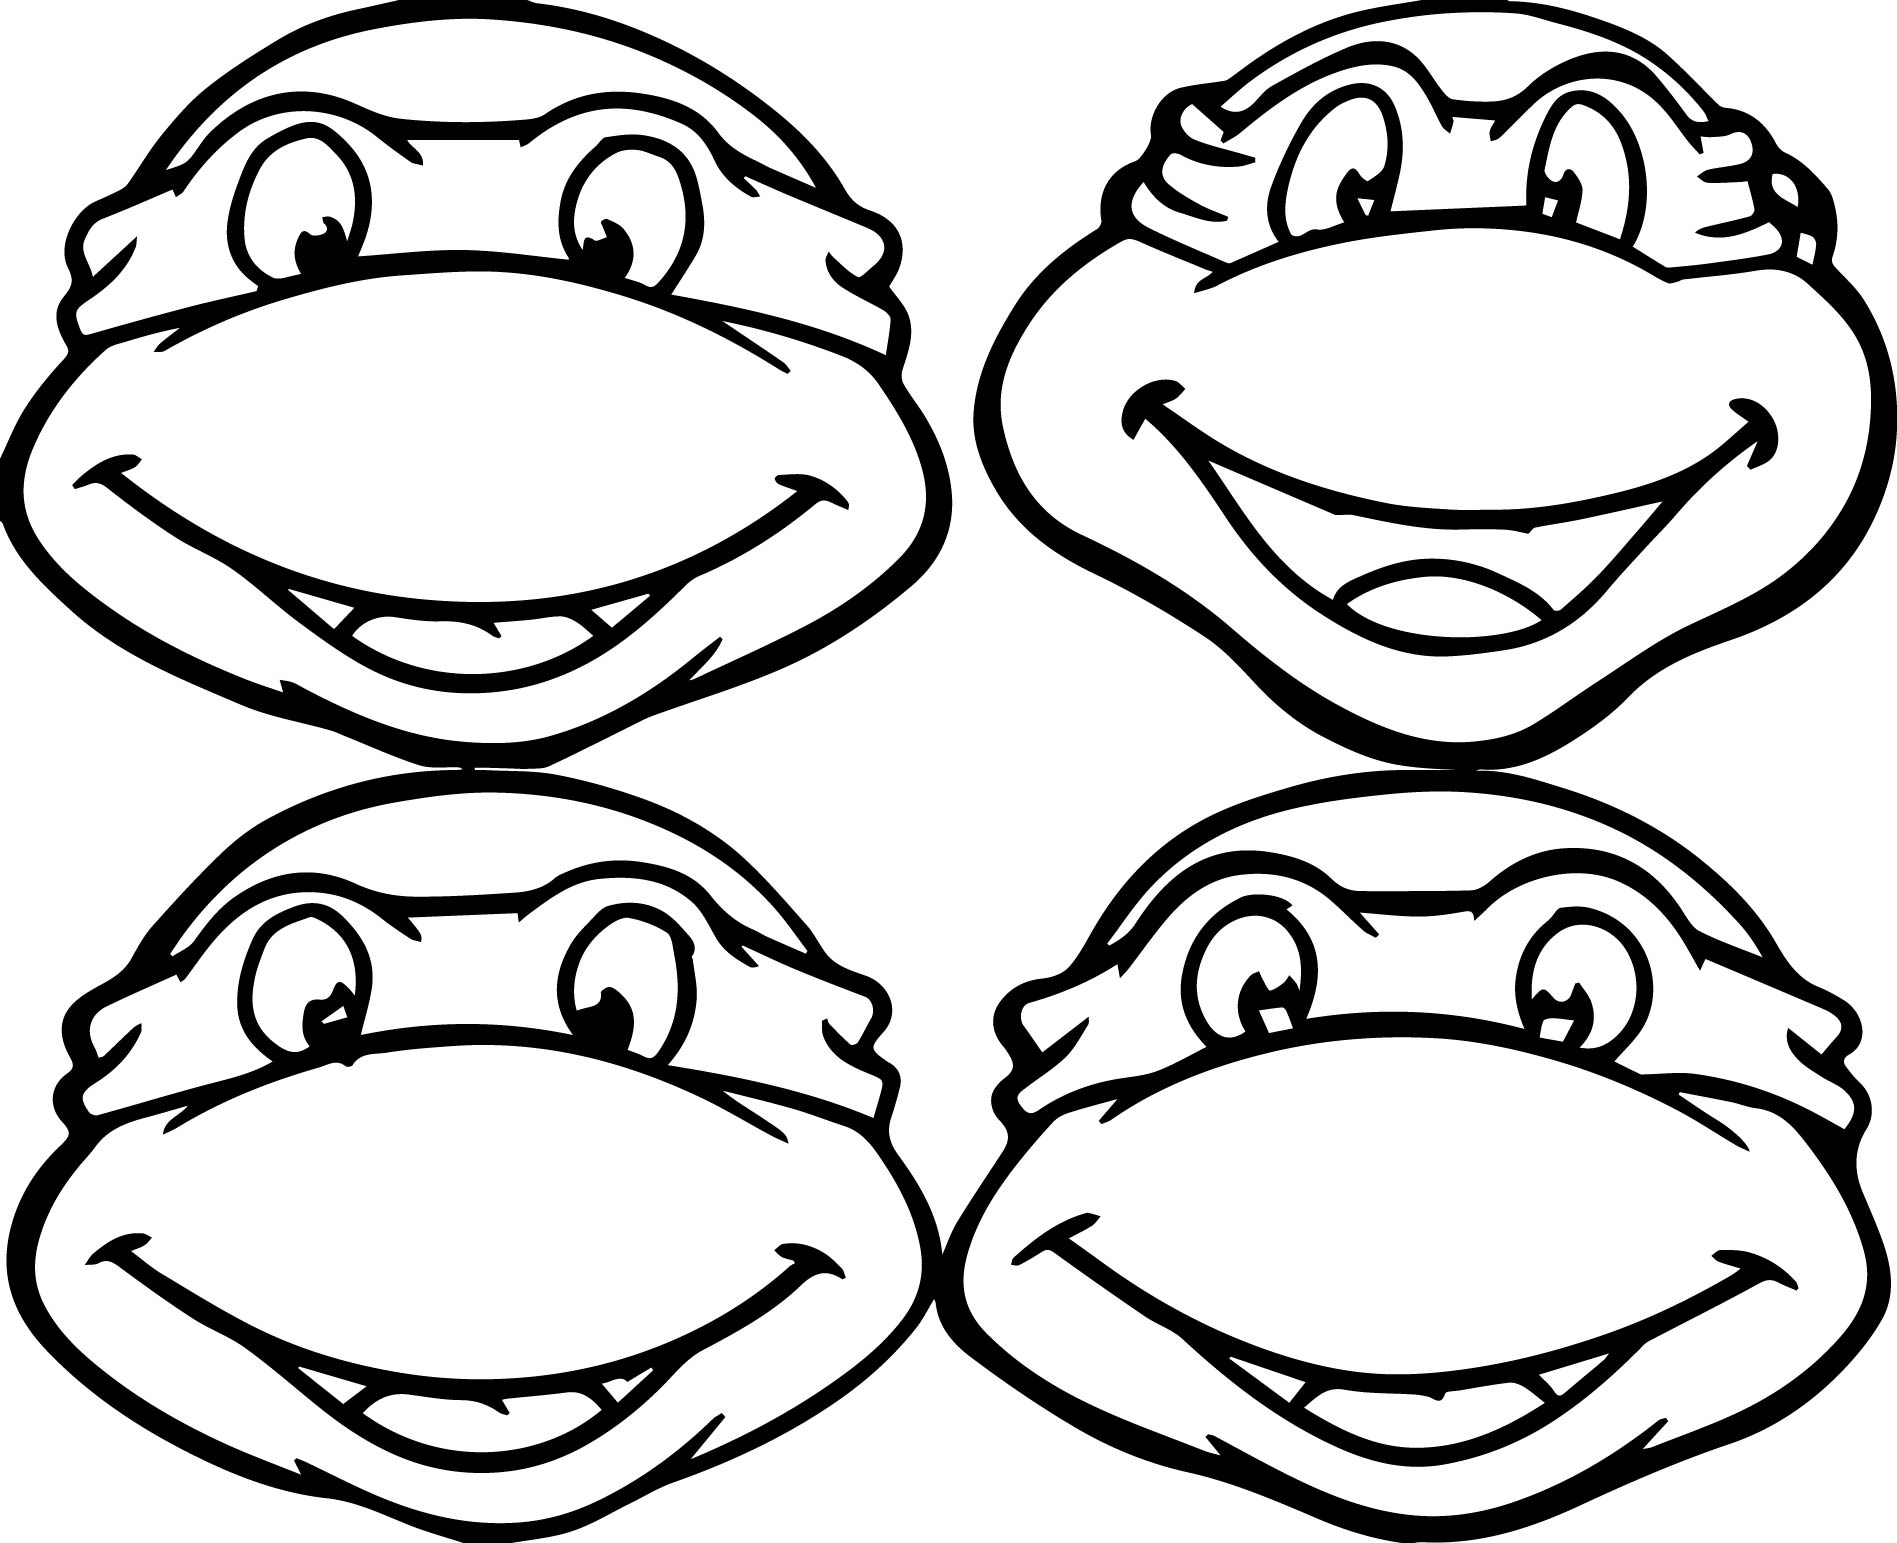 Teenage mutant ninja turtles coloring pages for Turtle coloring pages